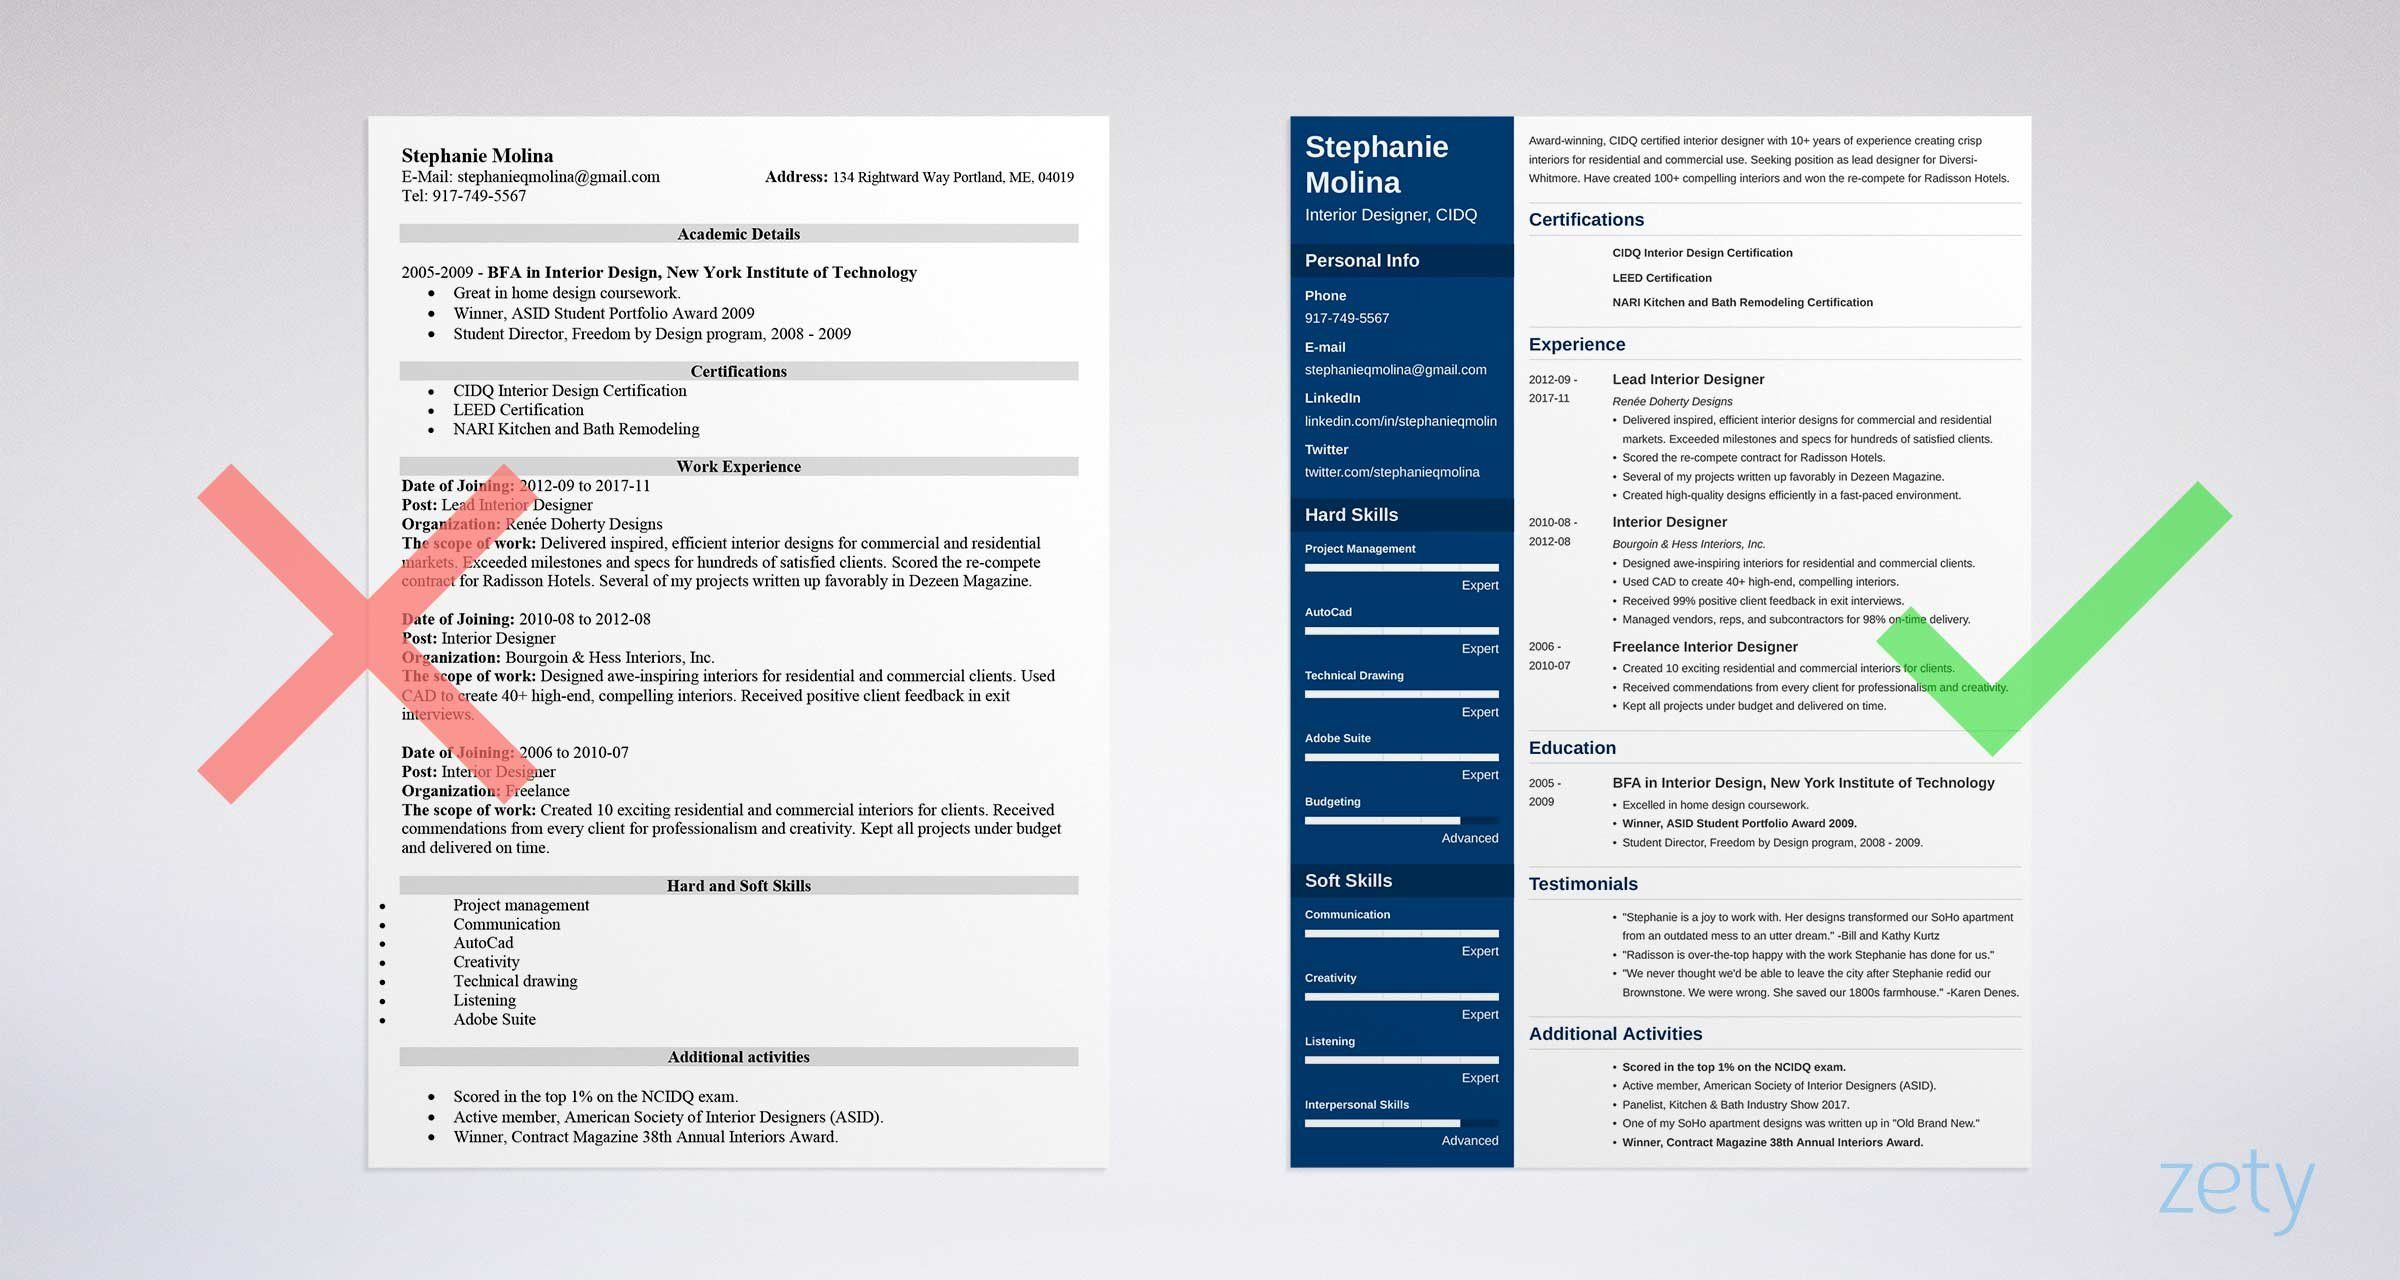 Cv Template Zety Best resume template, Resume template